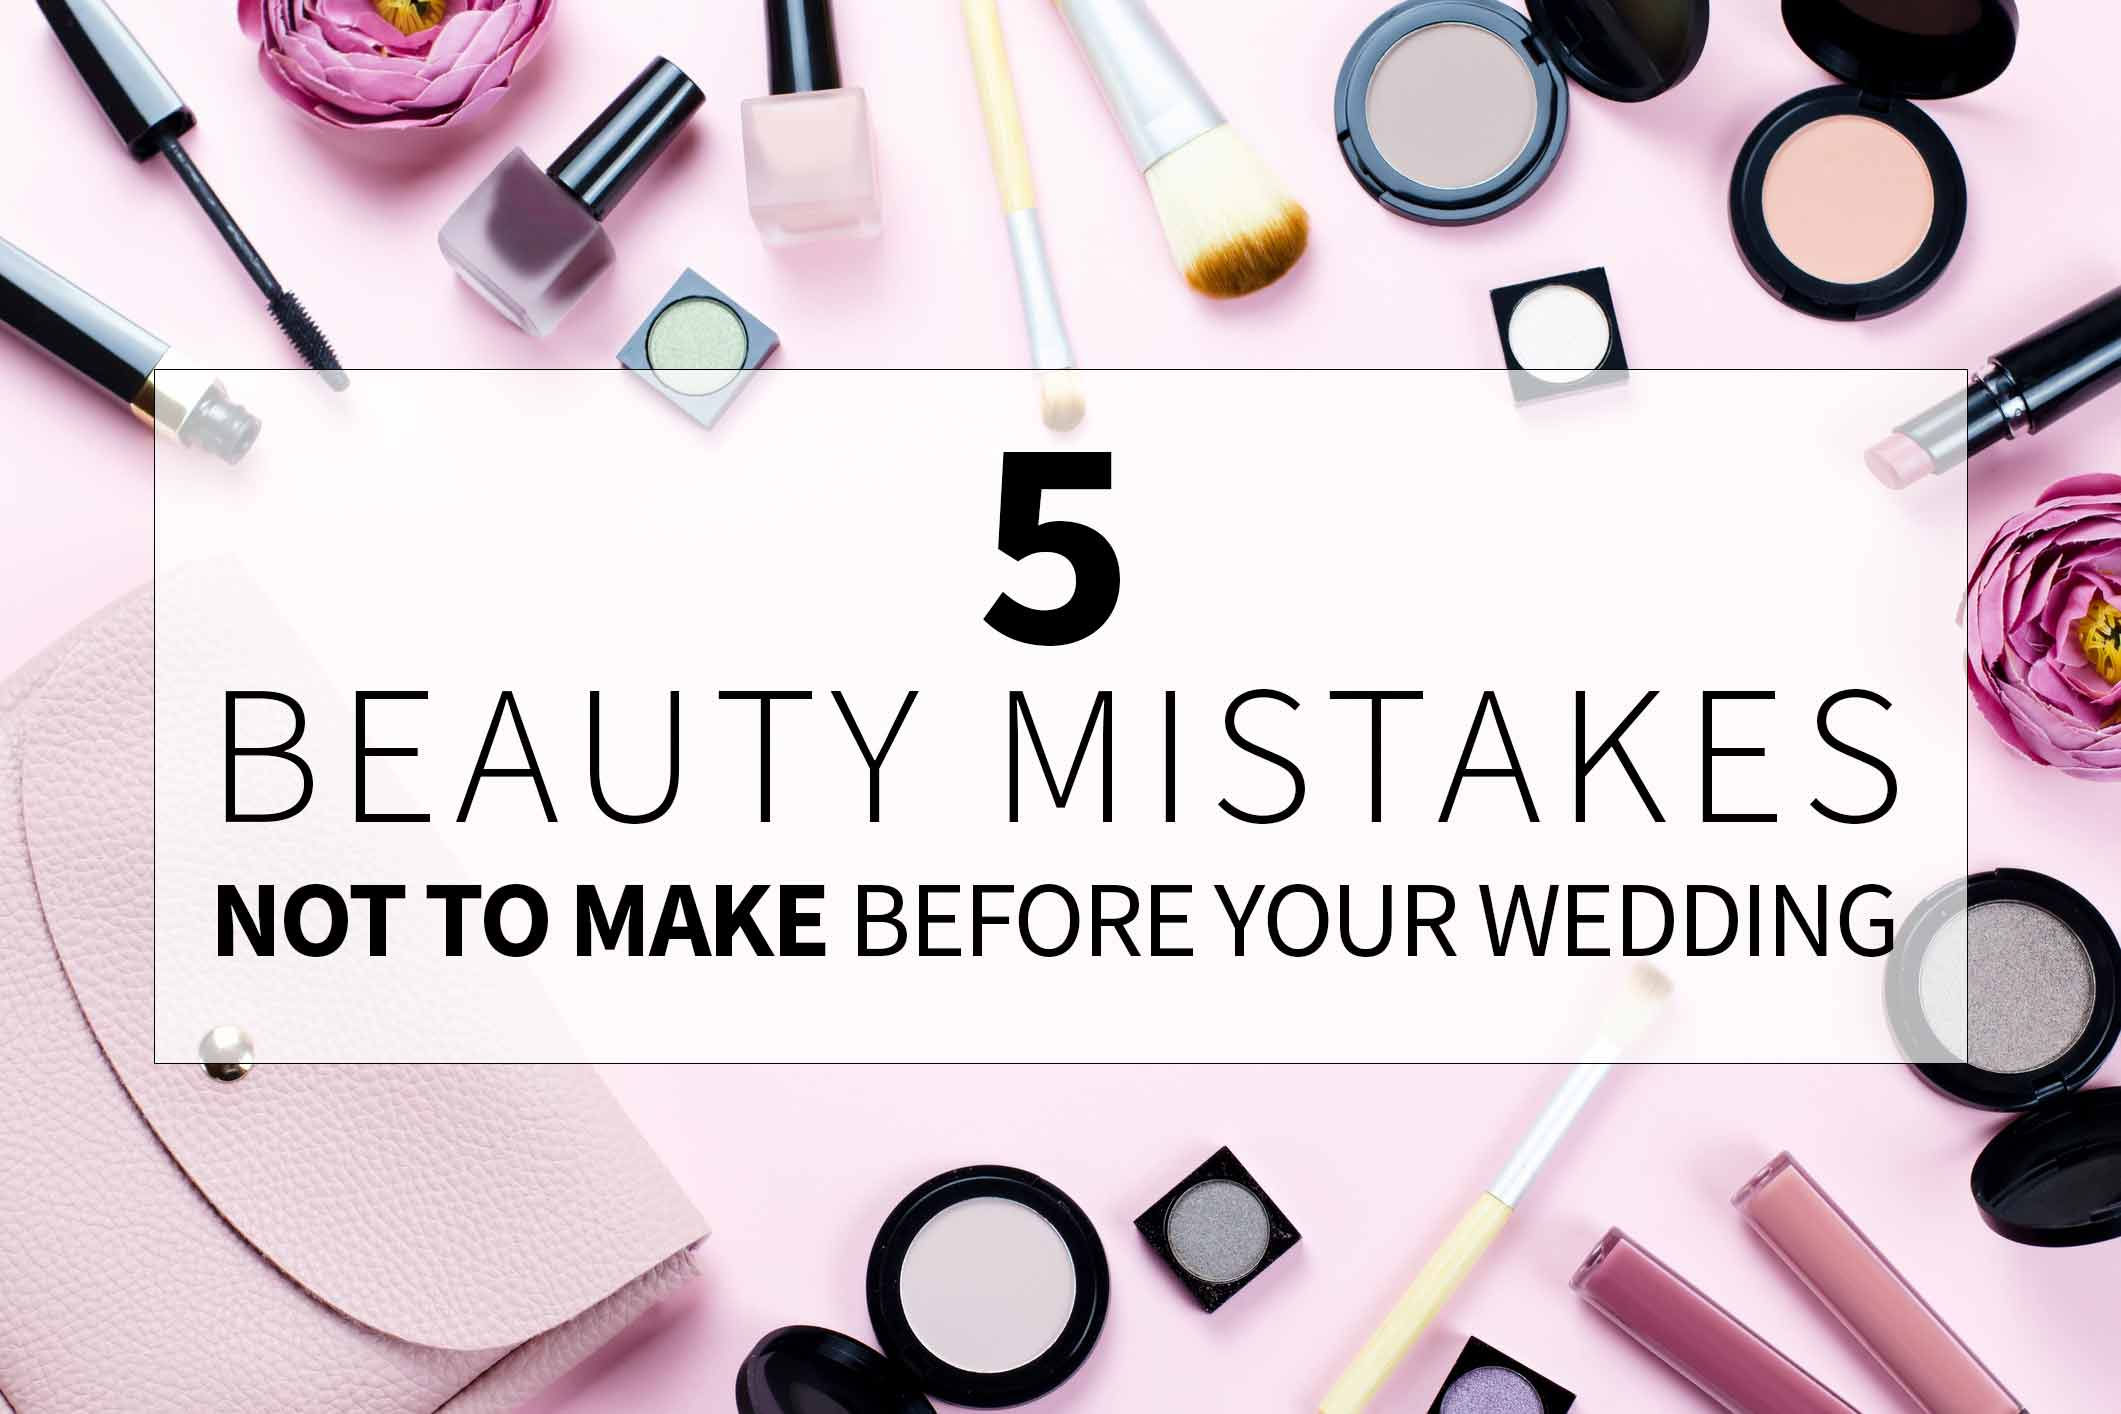 5 Beauty Mistakes to Not Make Before Your Wedding